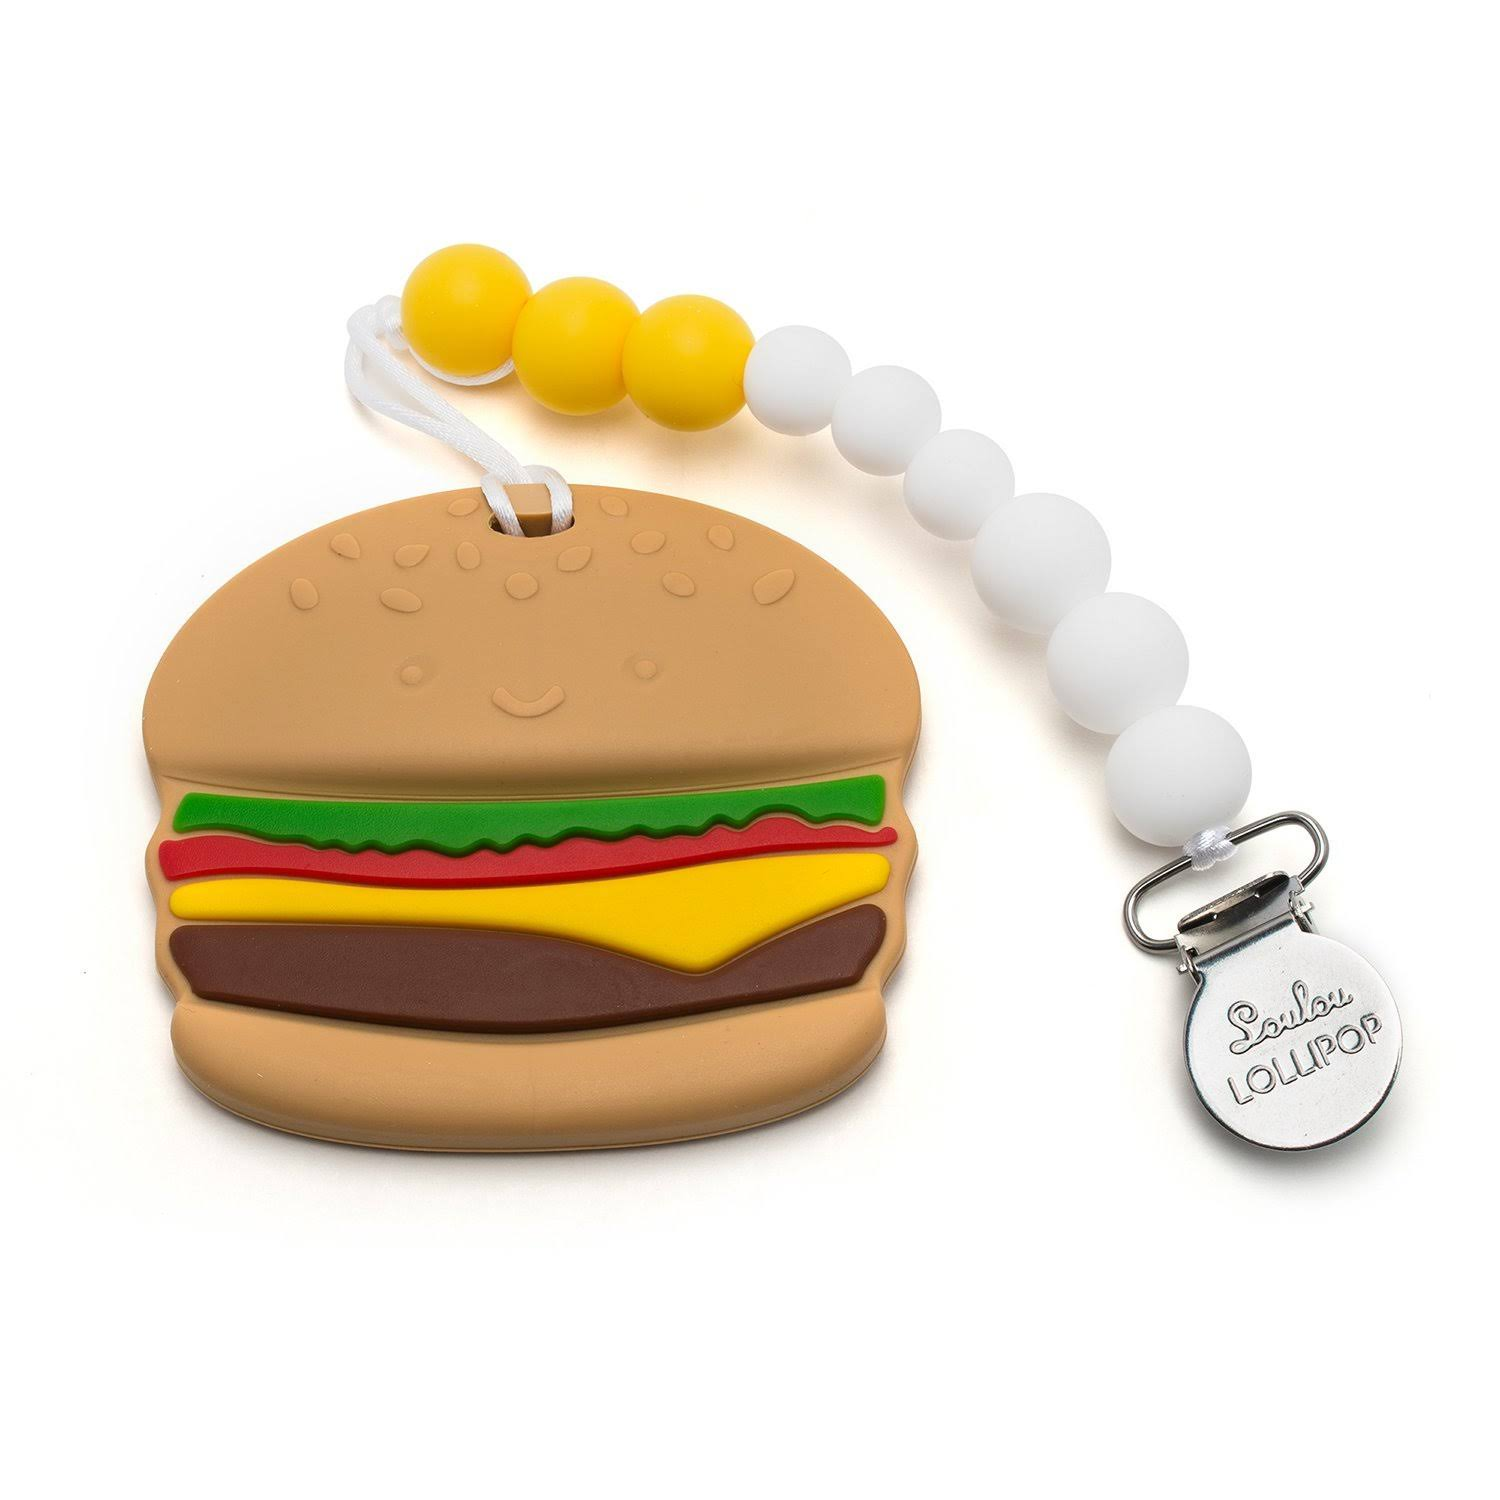 Loulou Lollipop Burger Teether Set